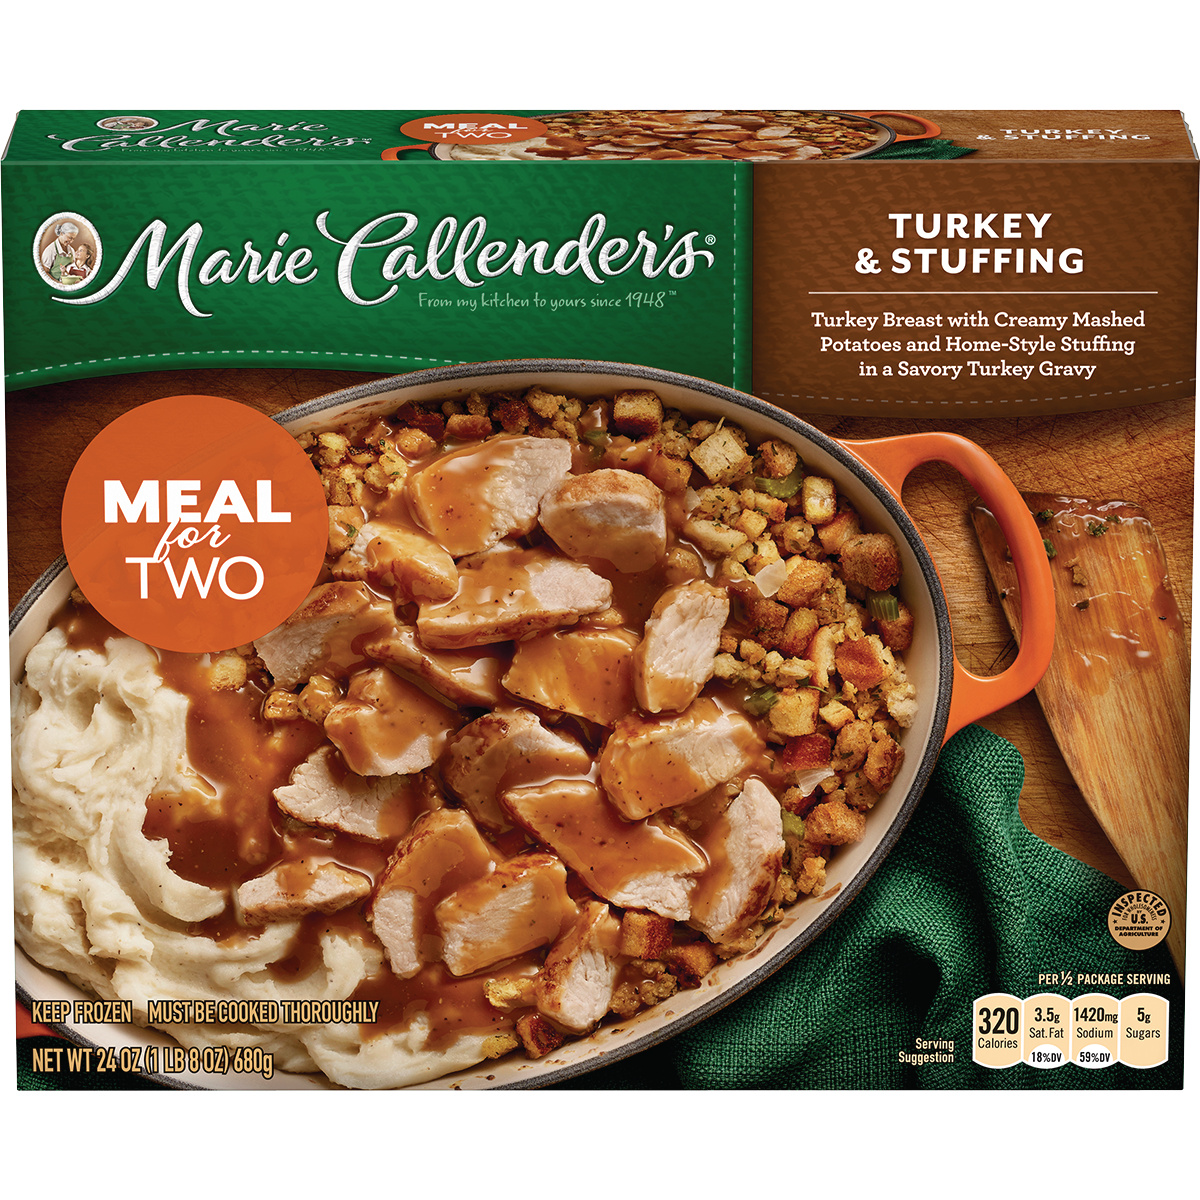 Marie Callender's Turkey & Stuffing, 24 Ounce